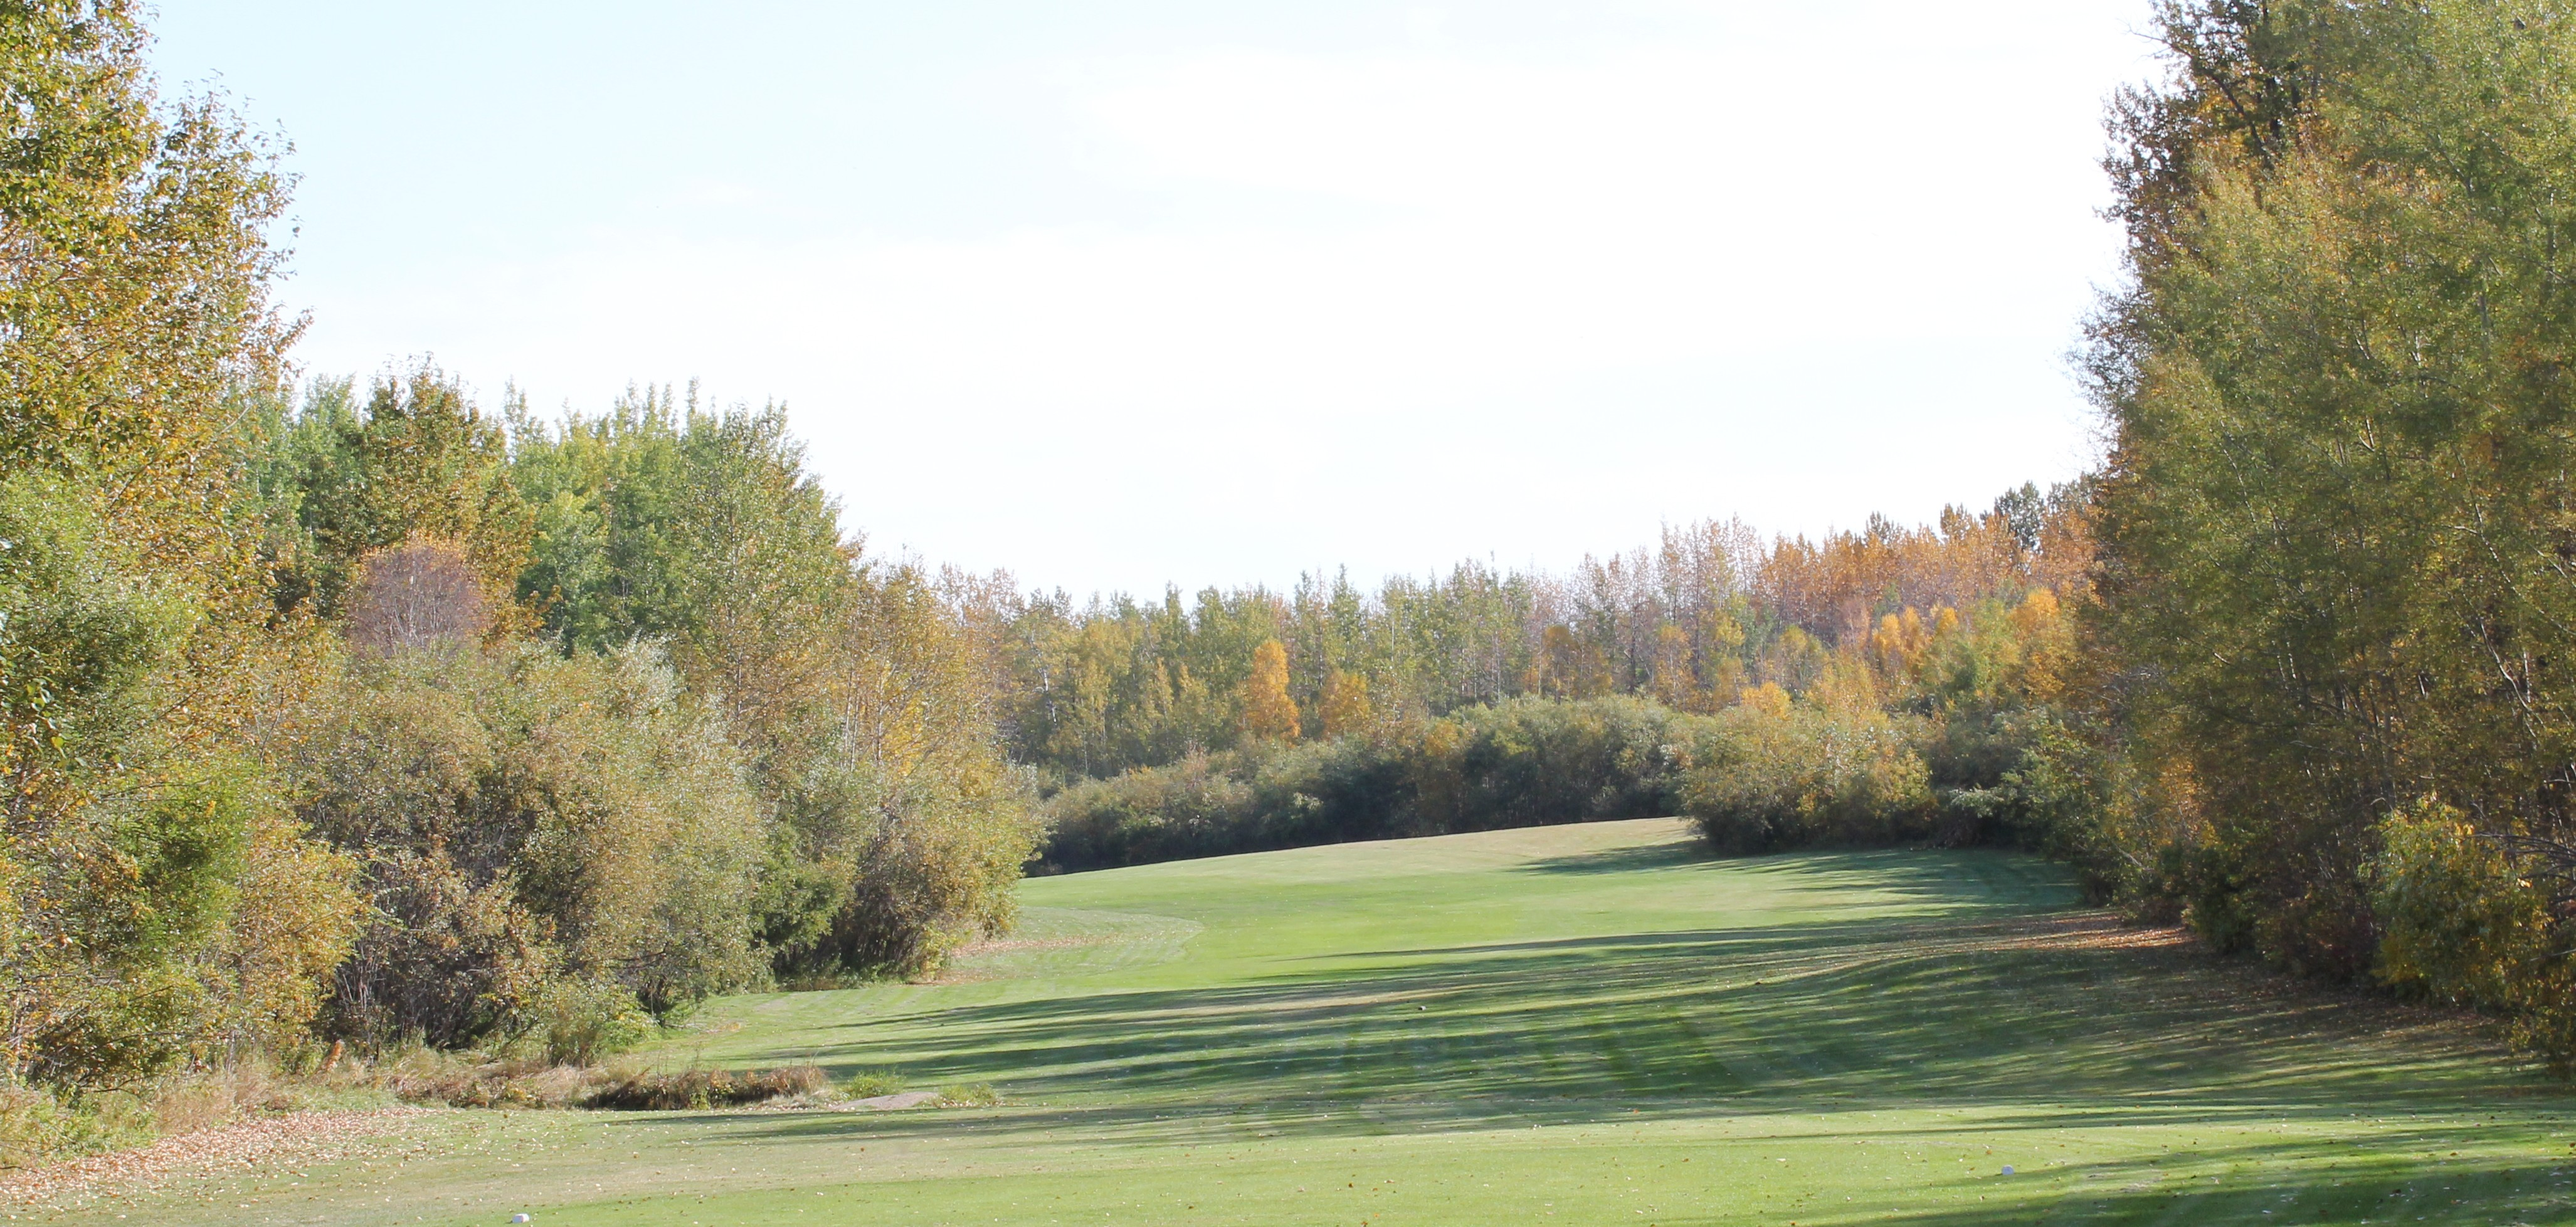 Our course offers some of the best golf holes you'll play